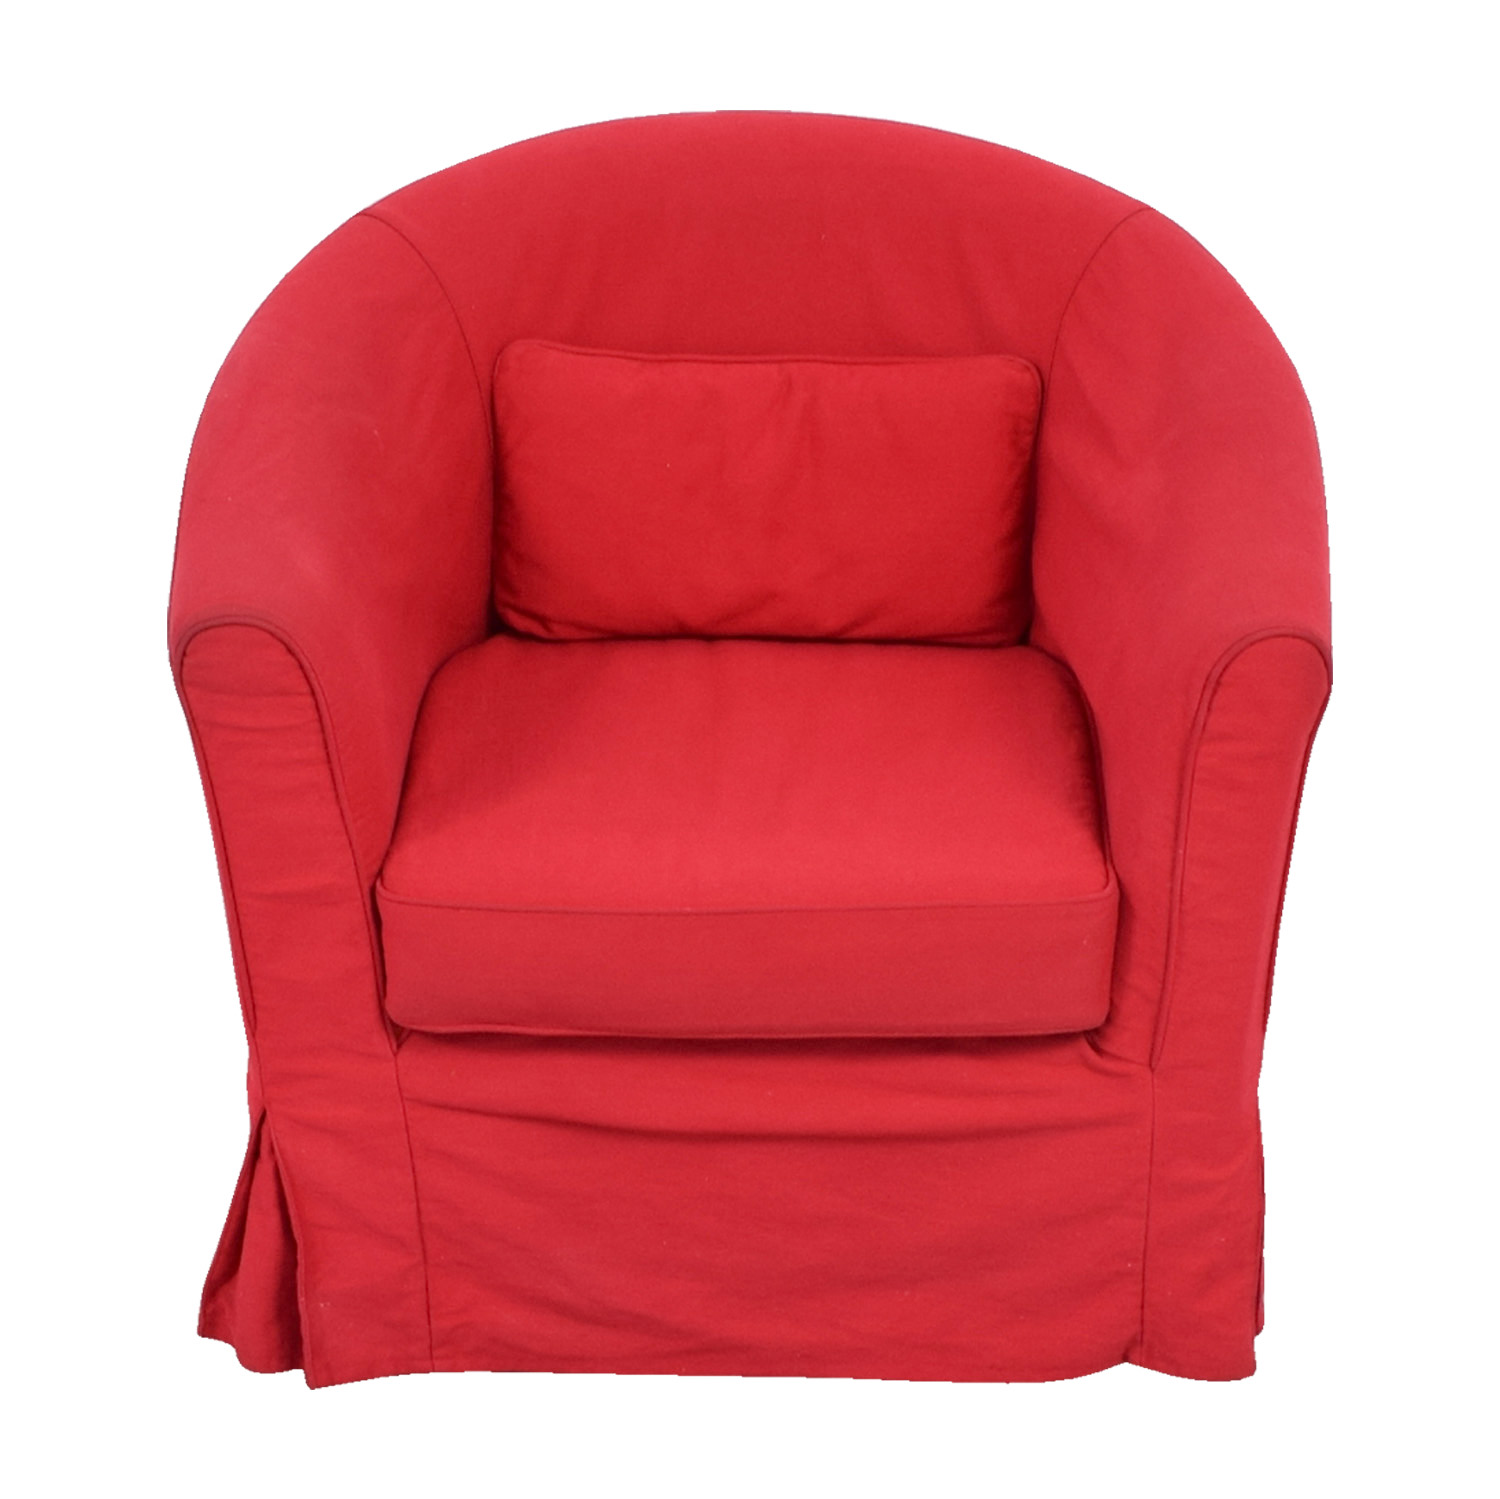 Crate & Barrel Red Upholstered Chair with Removable Cover / Chairs